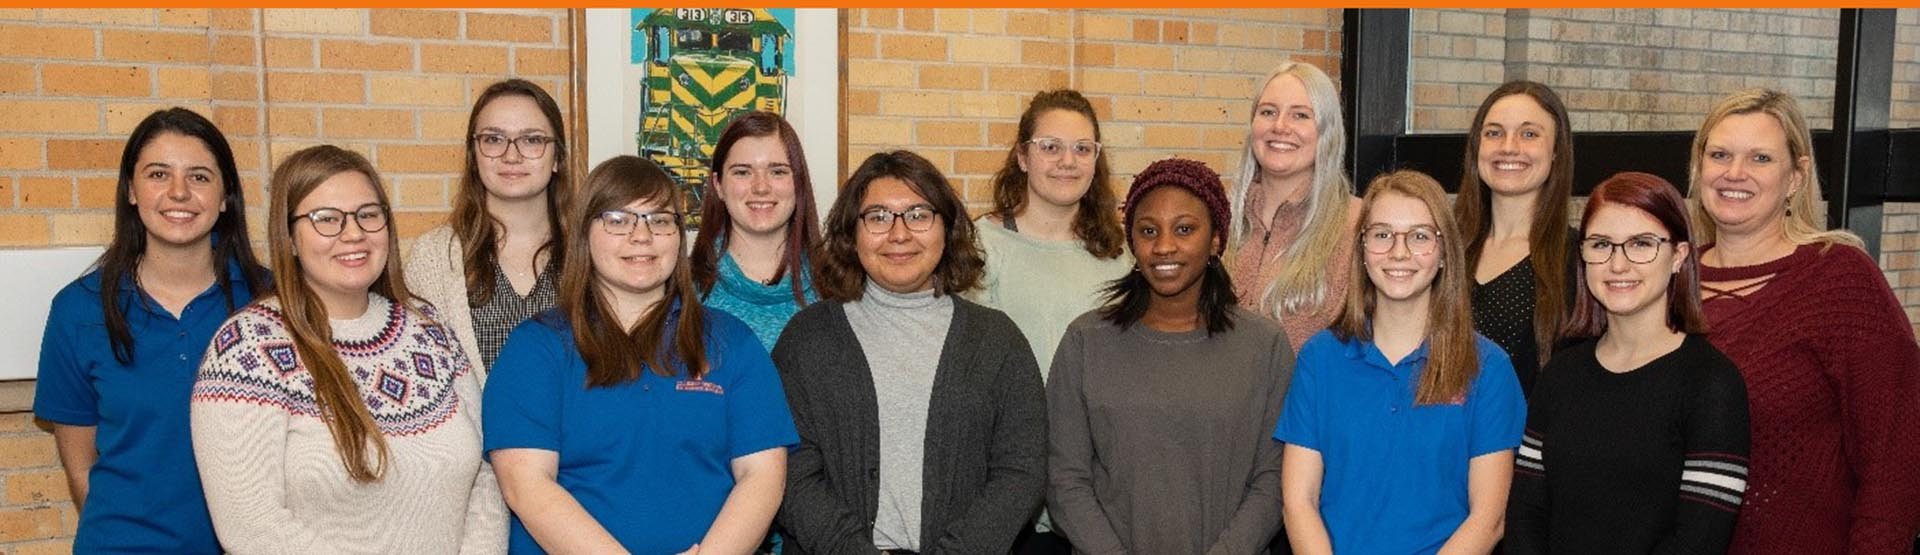 Women in STEM Program